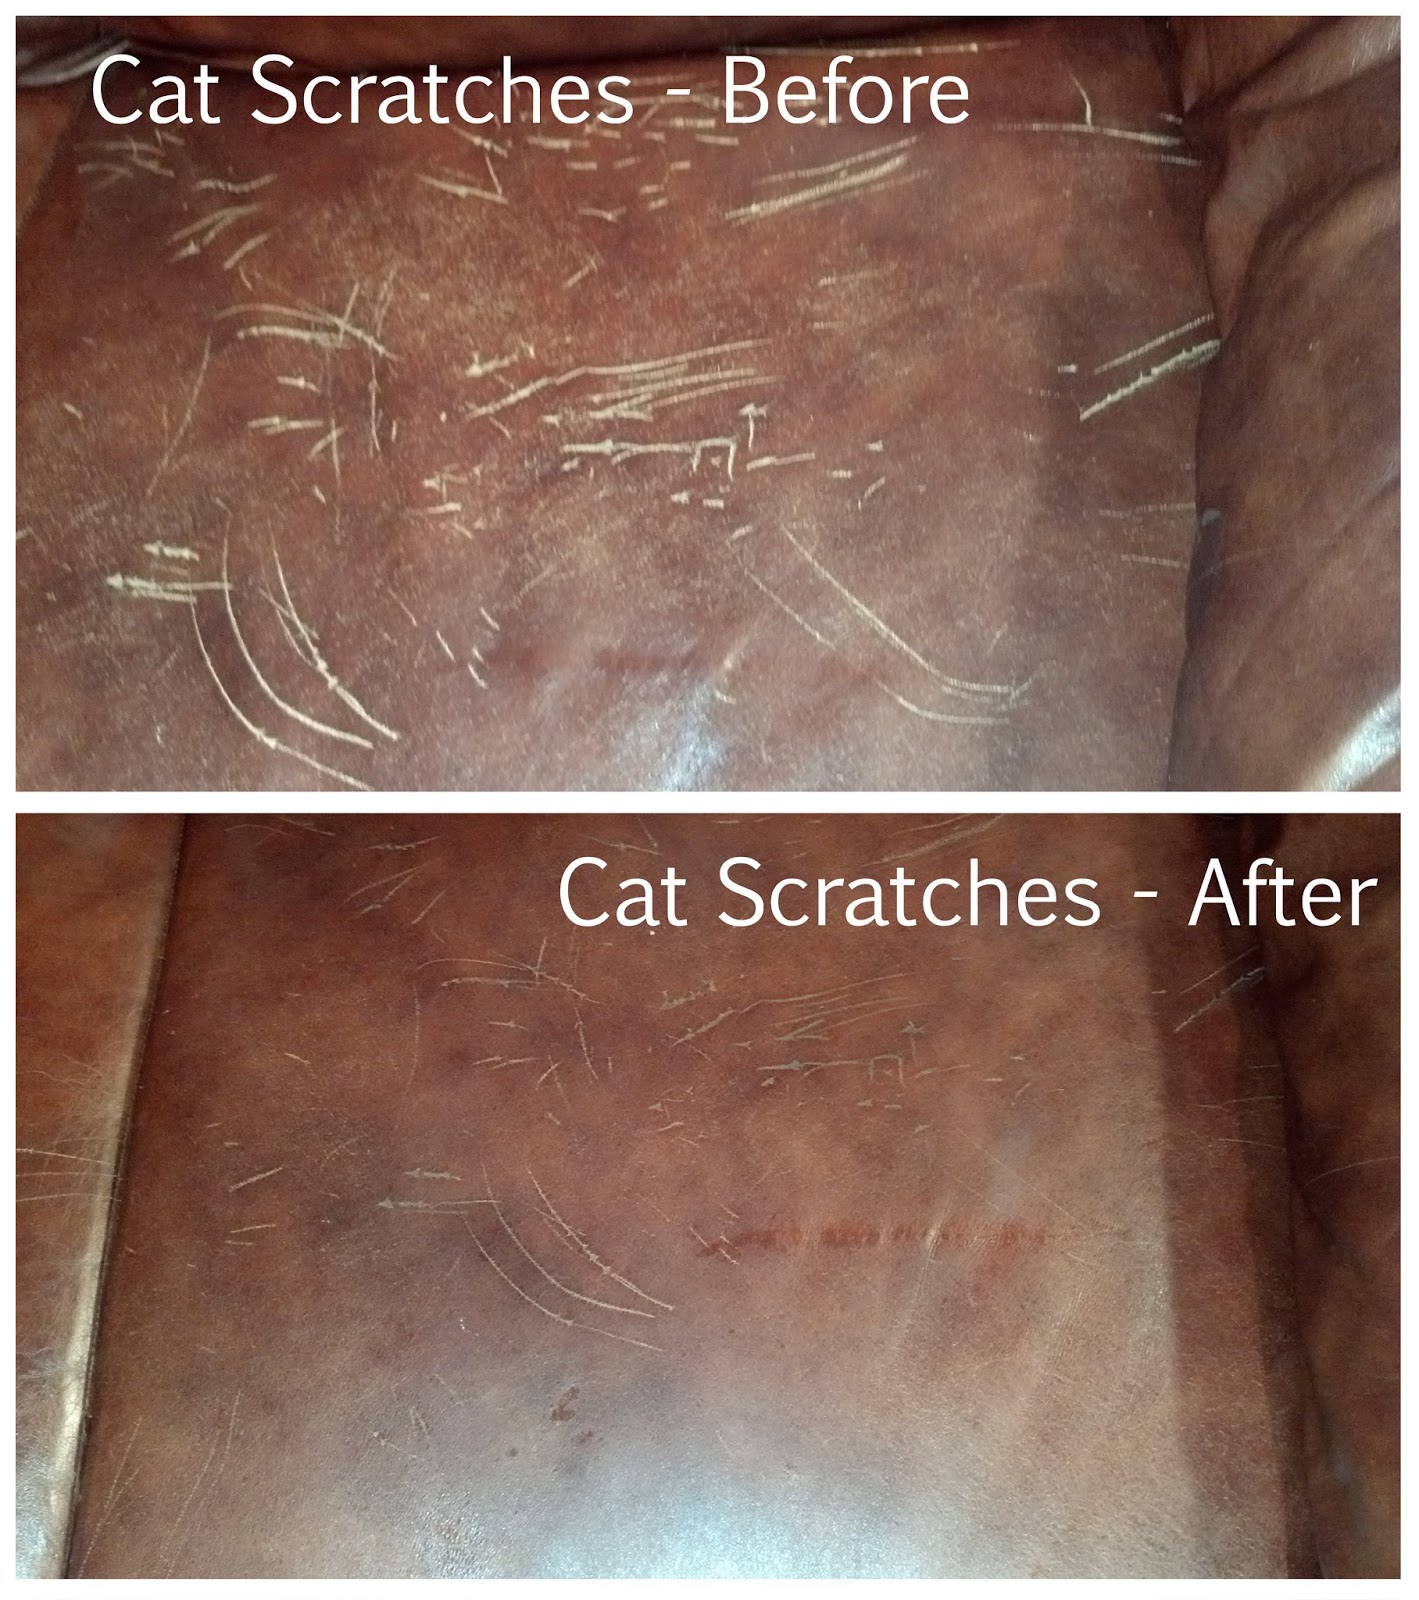 how do i repair a rip in leather sofa recliner reviews four sisters farm cat scratch fever furniture